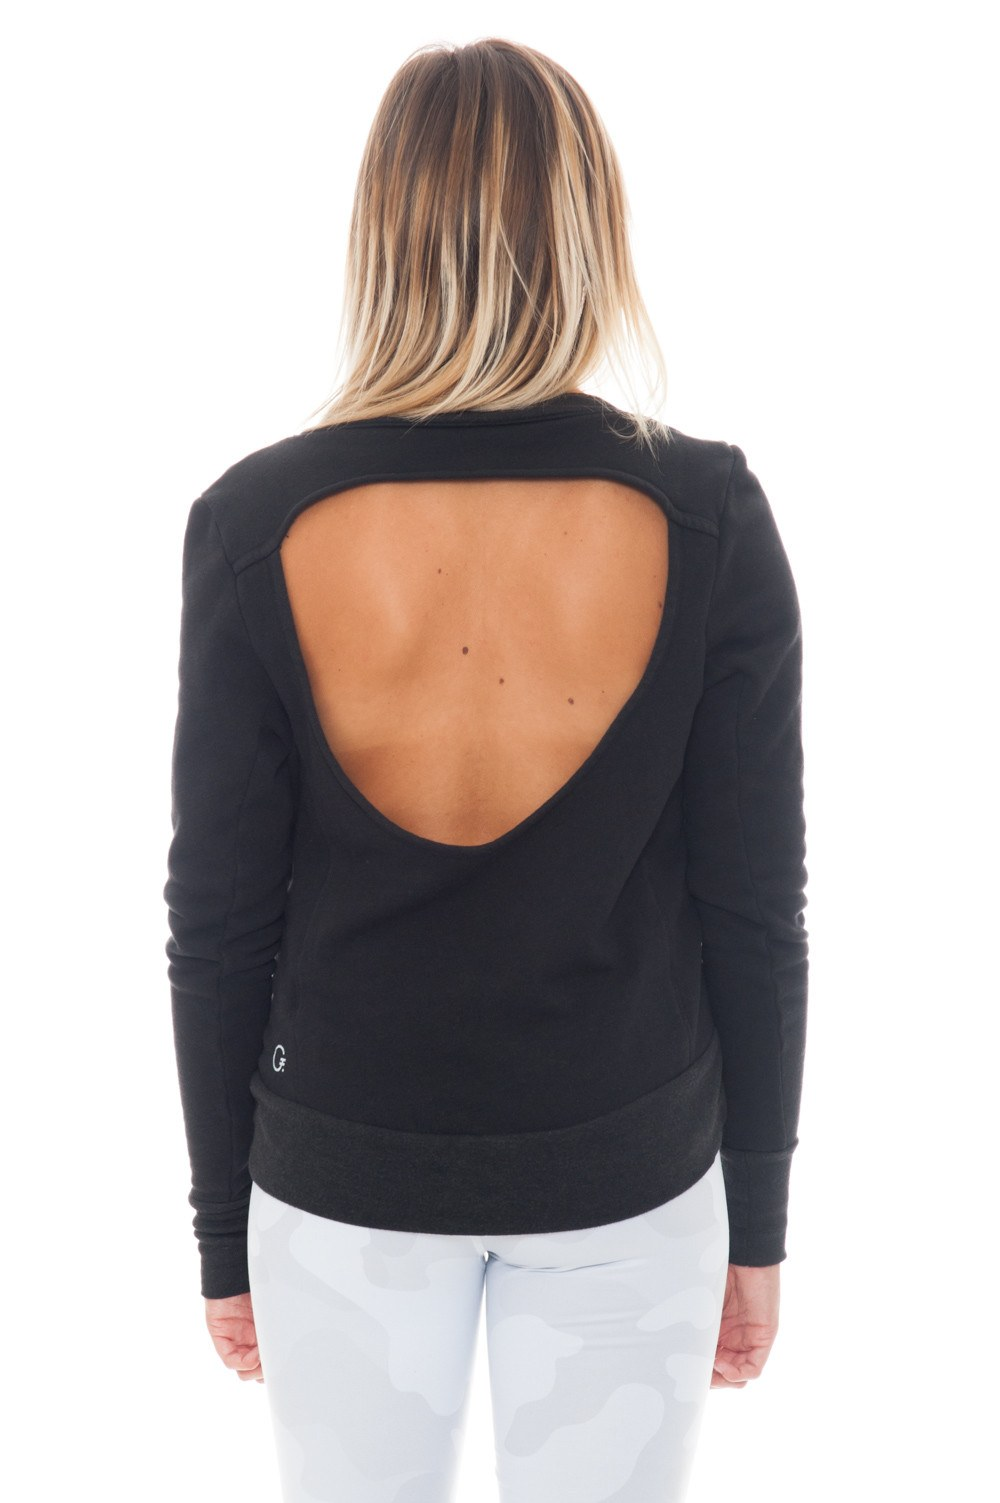 Sweatshirt - SIMONE Open Back by Good hYOUman - 2